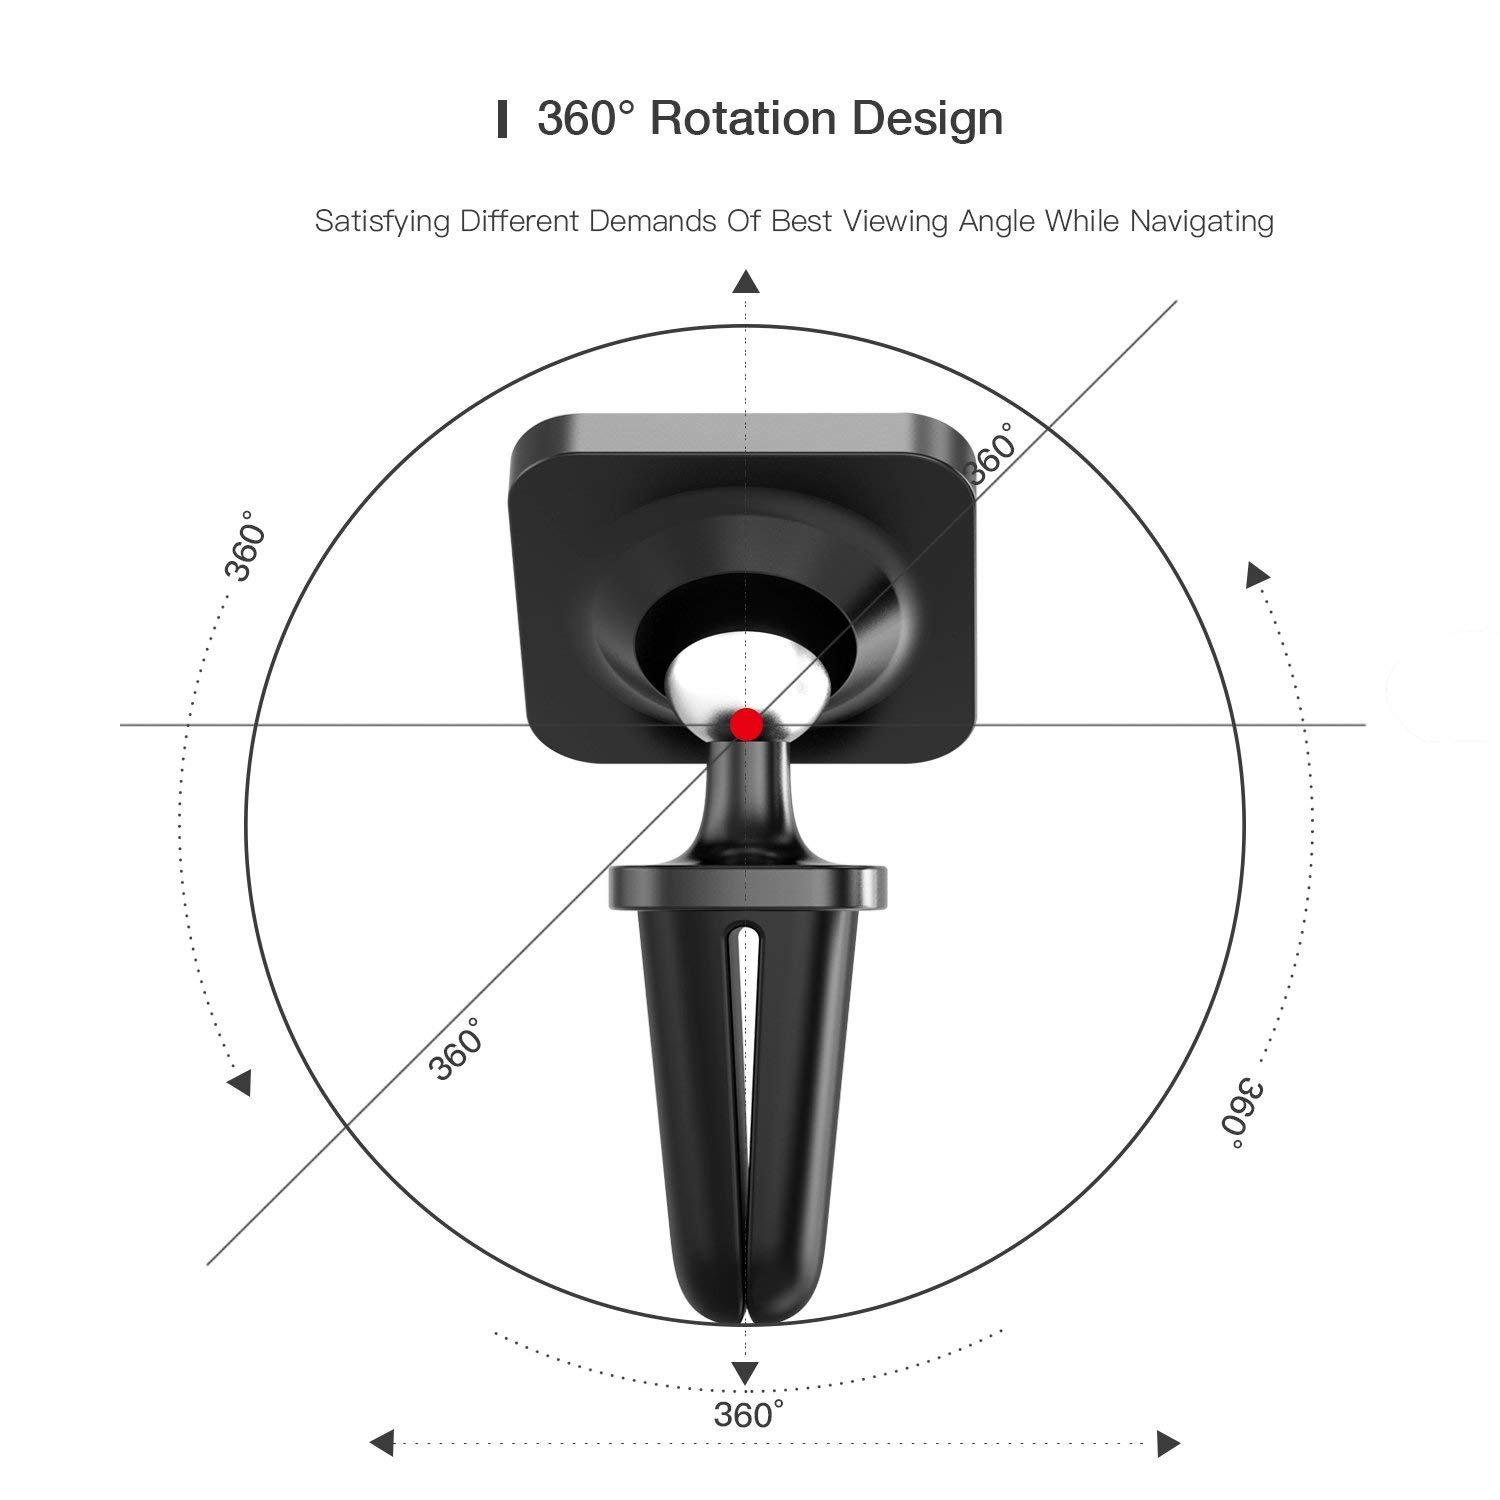 KONKY Air Vent Car Mount 360 Degree Rotation Universal Cradle Stand for iPhone X//8//8 Plus Magnetic Car Phone Holder Galaxy S8//S7 and Other Smartphone Black 1801CME-CAR-AIRZJ-BK